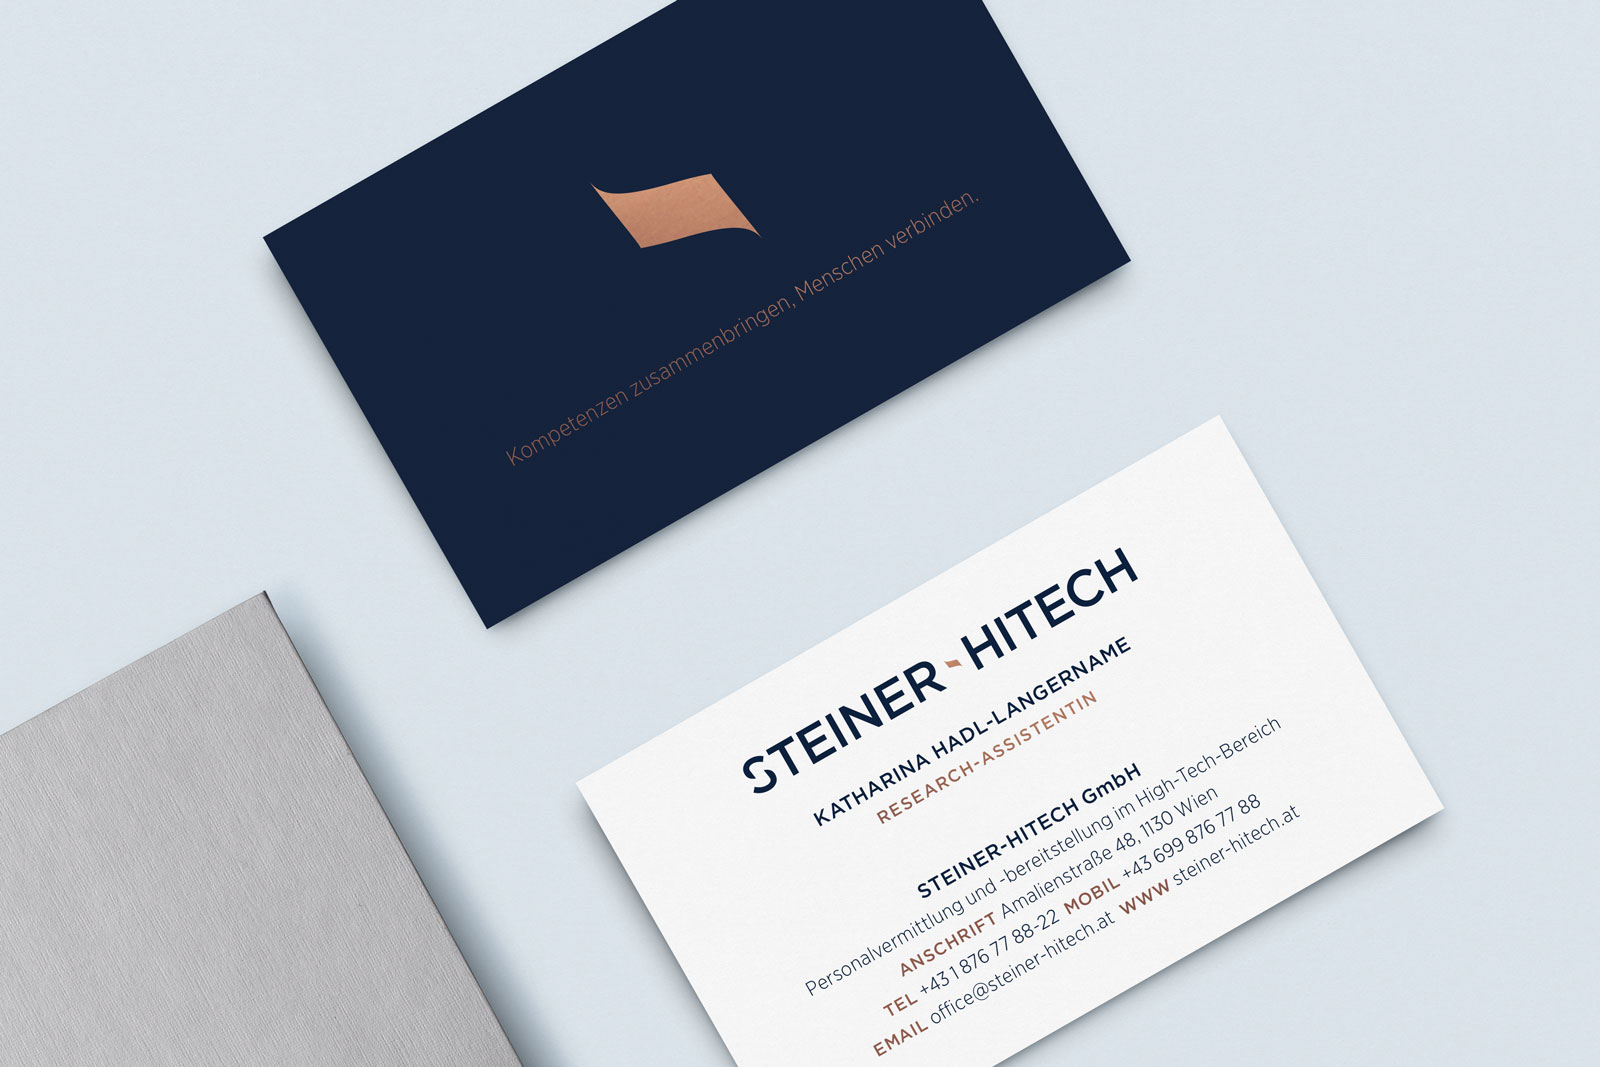 Steiner Hitech Businesscard 1